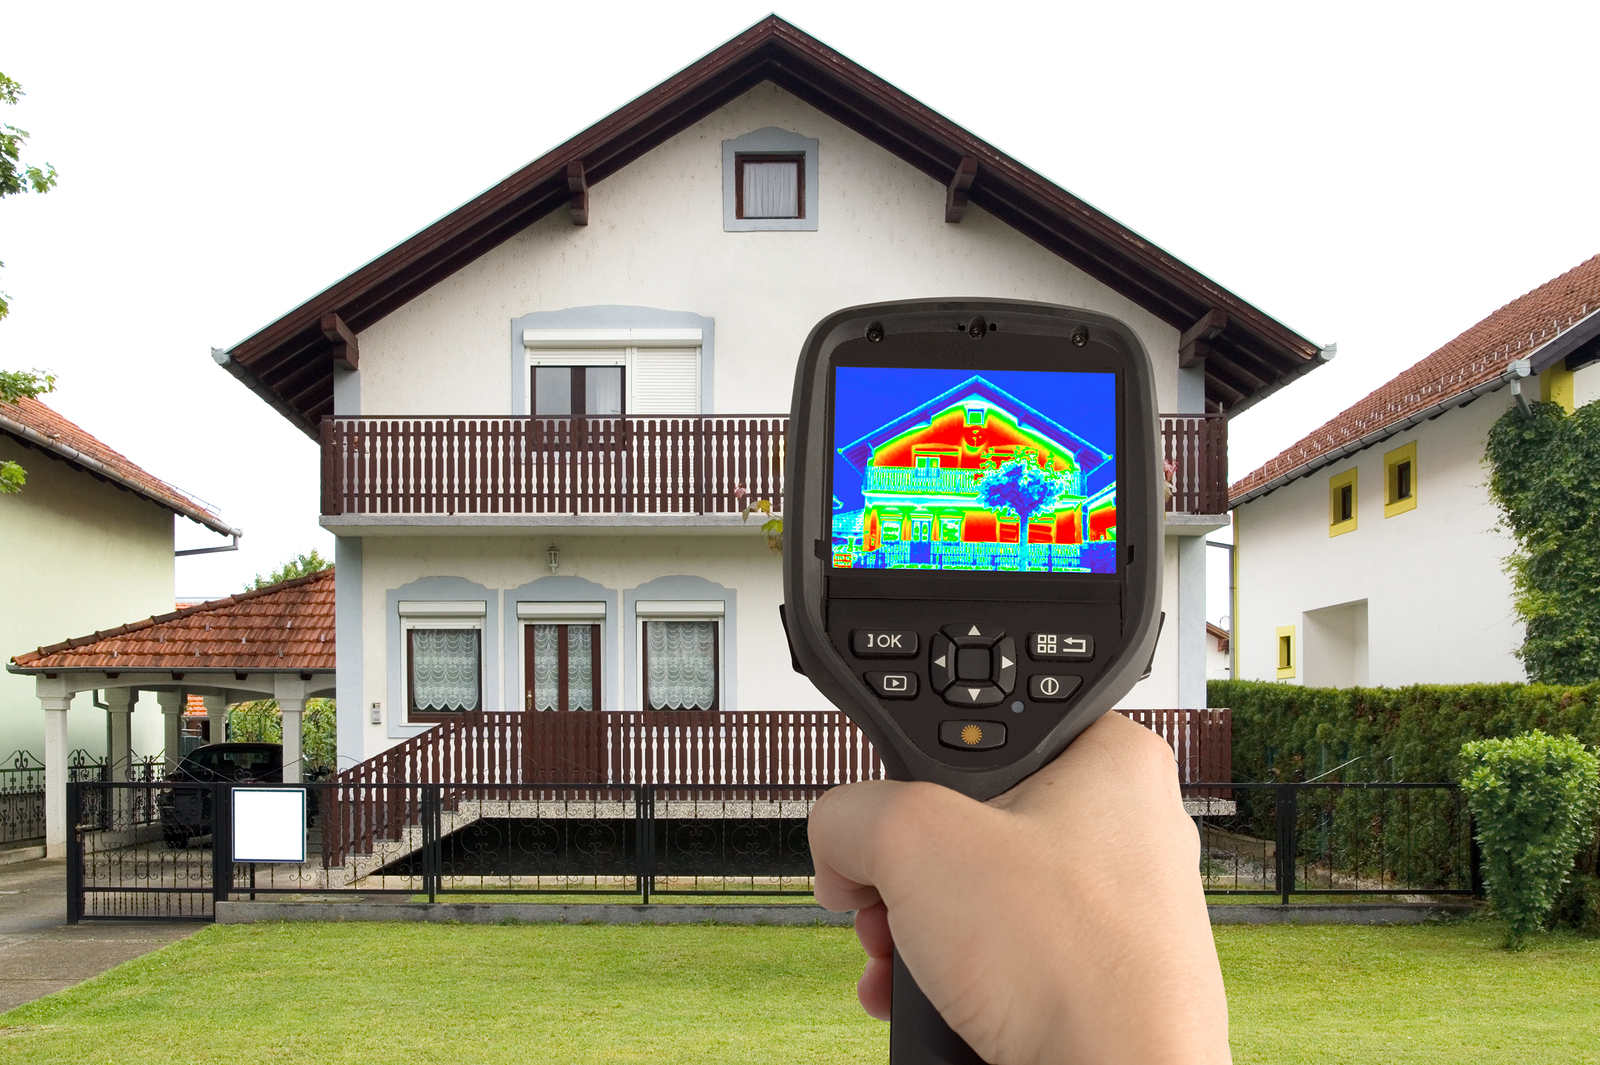 Starmark Home Inspections